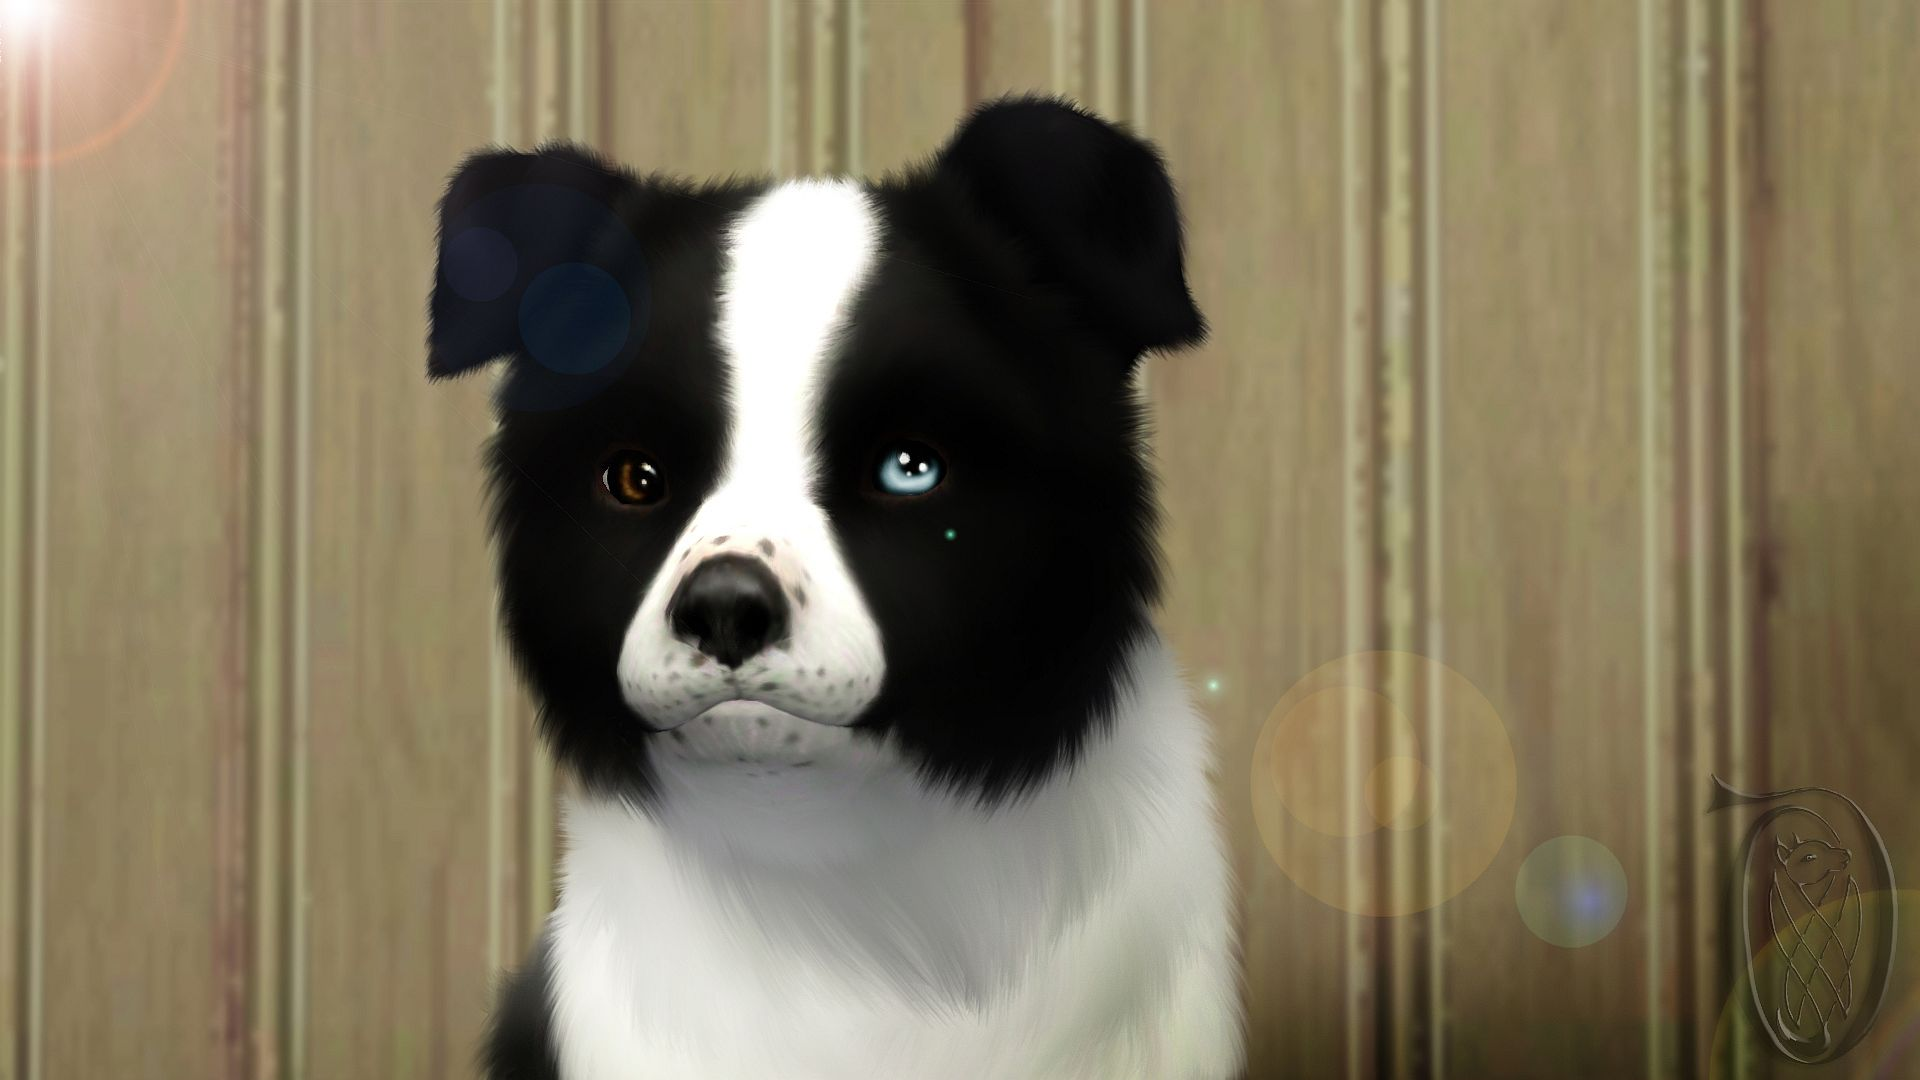 Sims 3 Pets The Last Blue Spirit By Spiritythedragon On